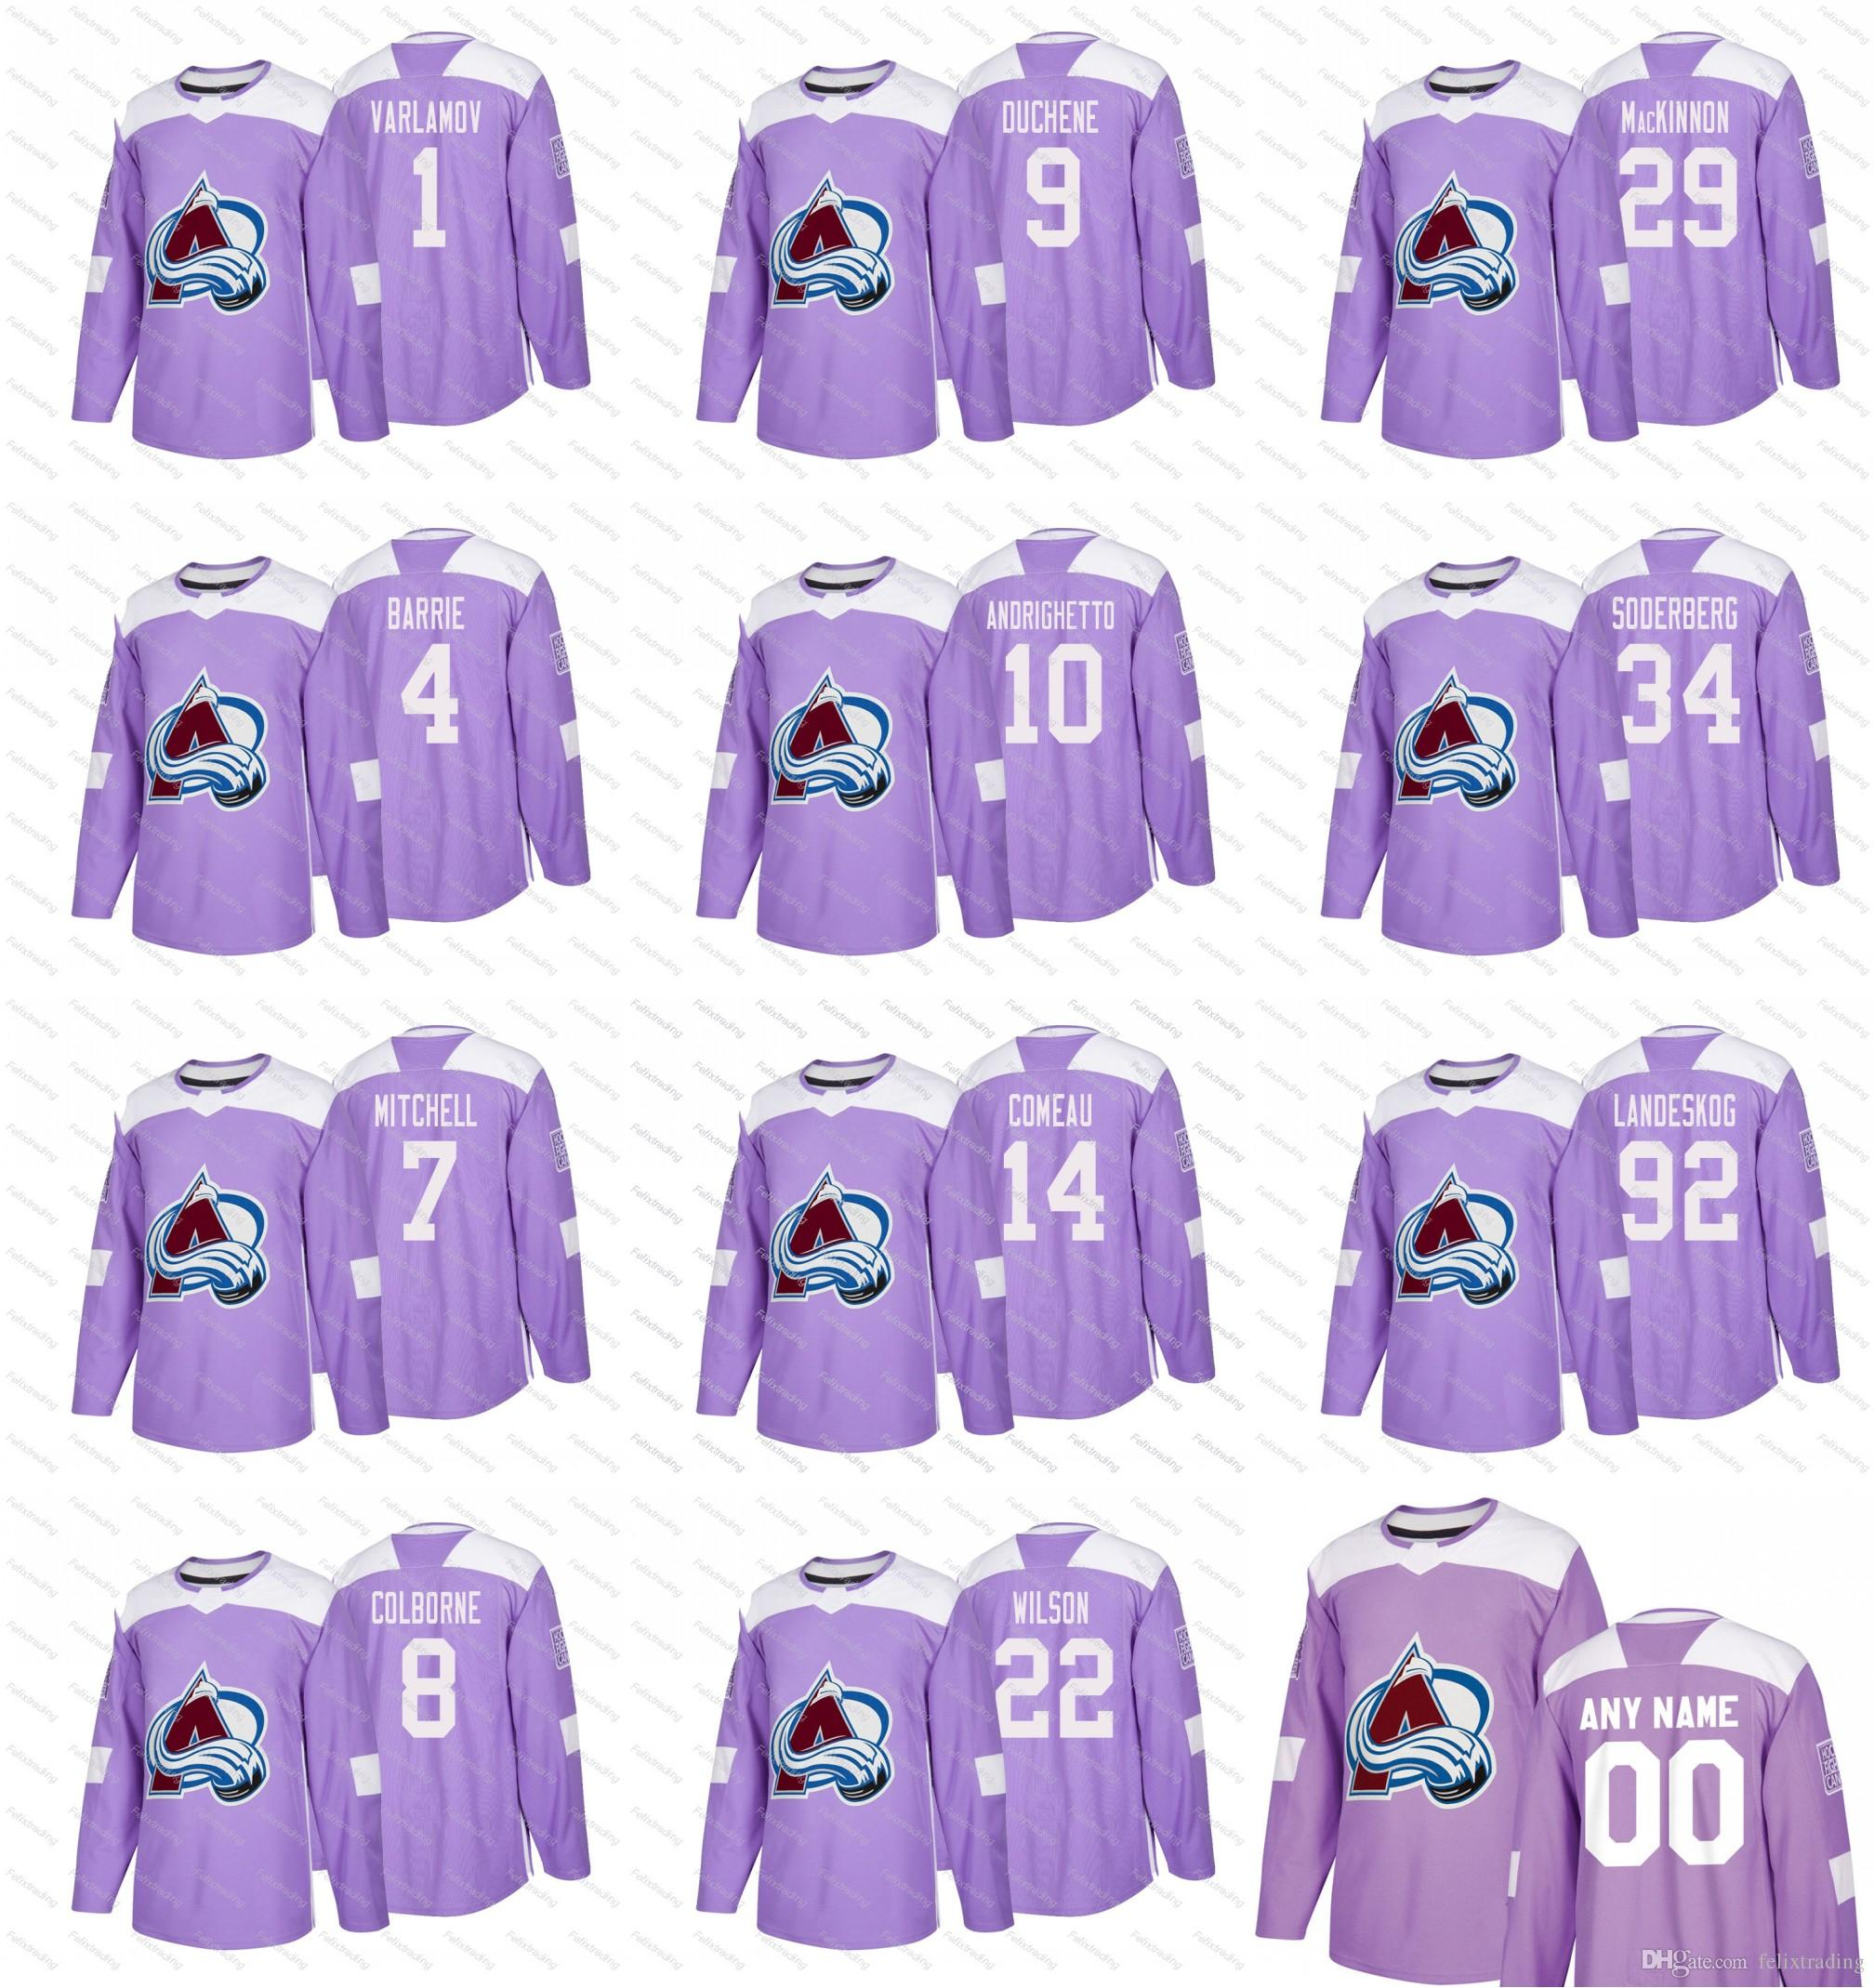 64838ca56 2018 Purple Fights Cancer Colorado Avalanche 29 Nathan MacKinno Wilson  Andrighetto Duchene Colborne Mitchell Barrie Varlamov Hockey Jerseys 2018  Purple ...